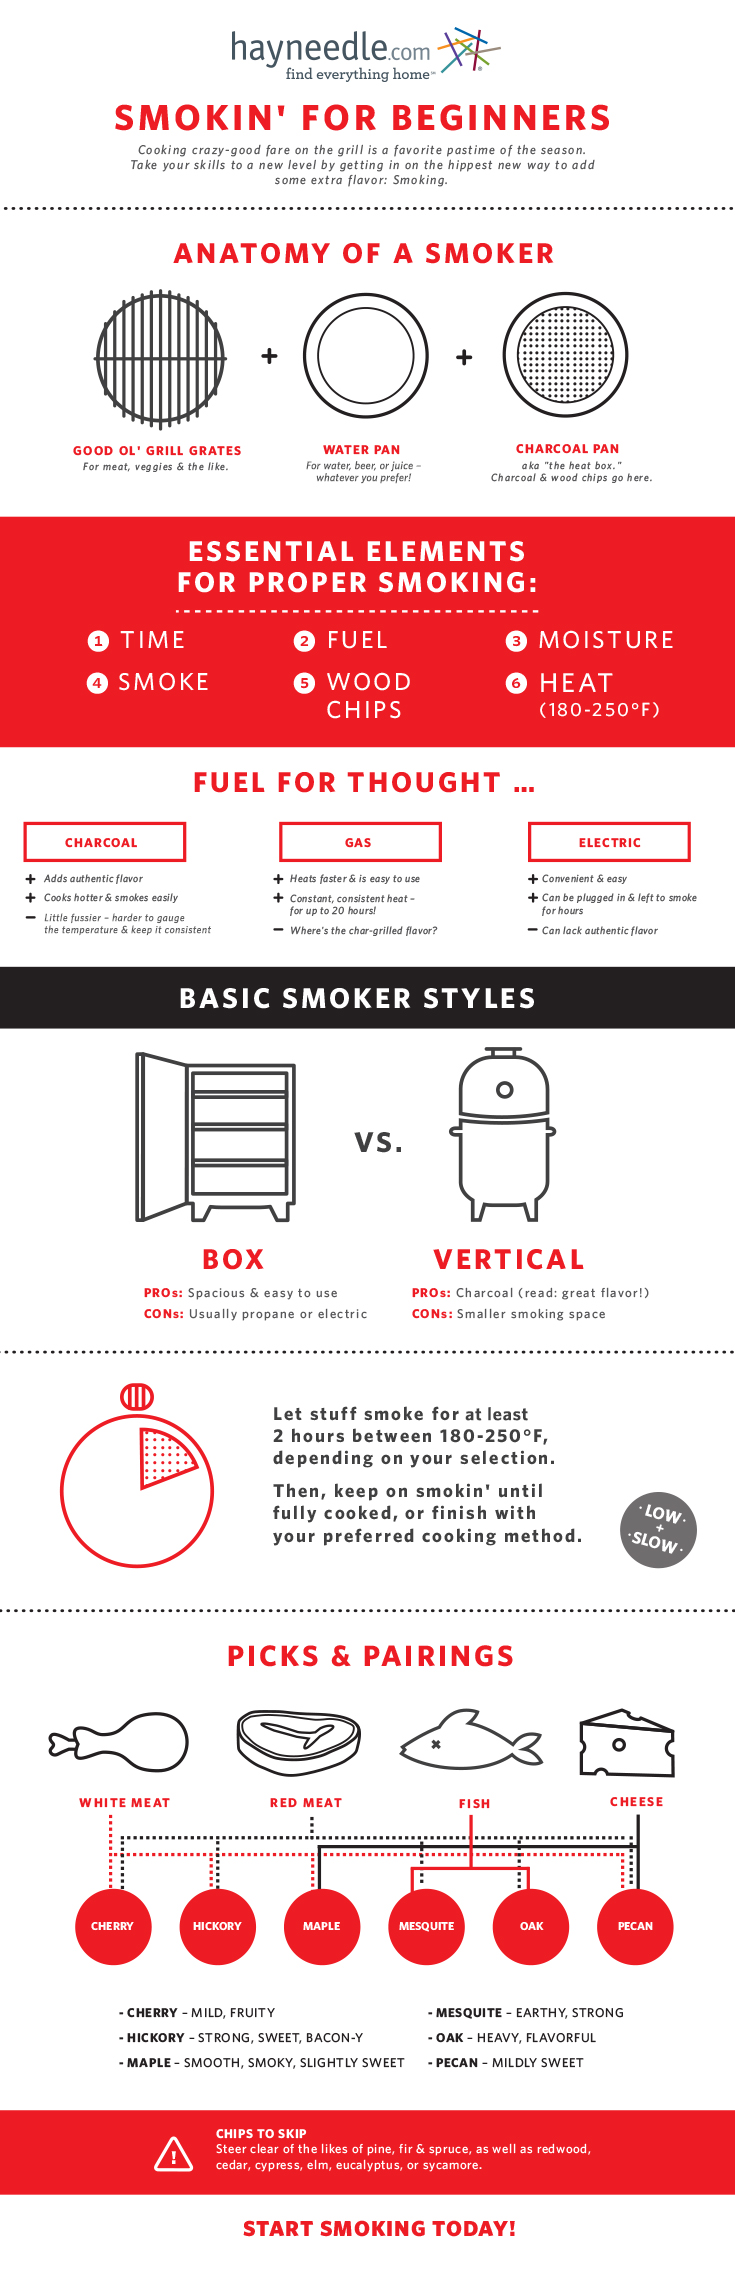 Smokin' for Beginners